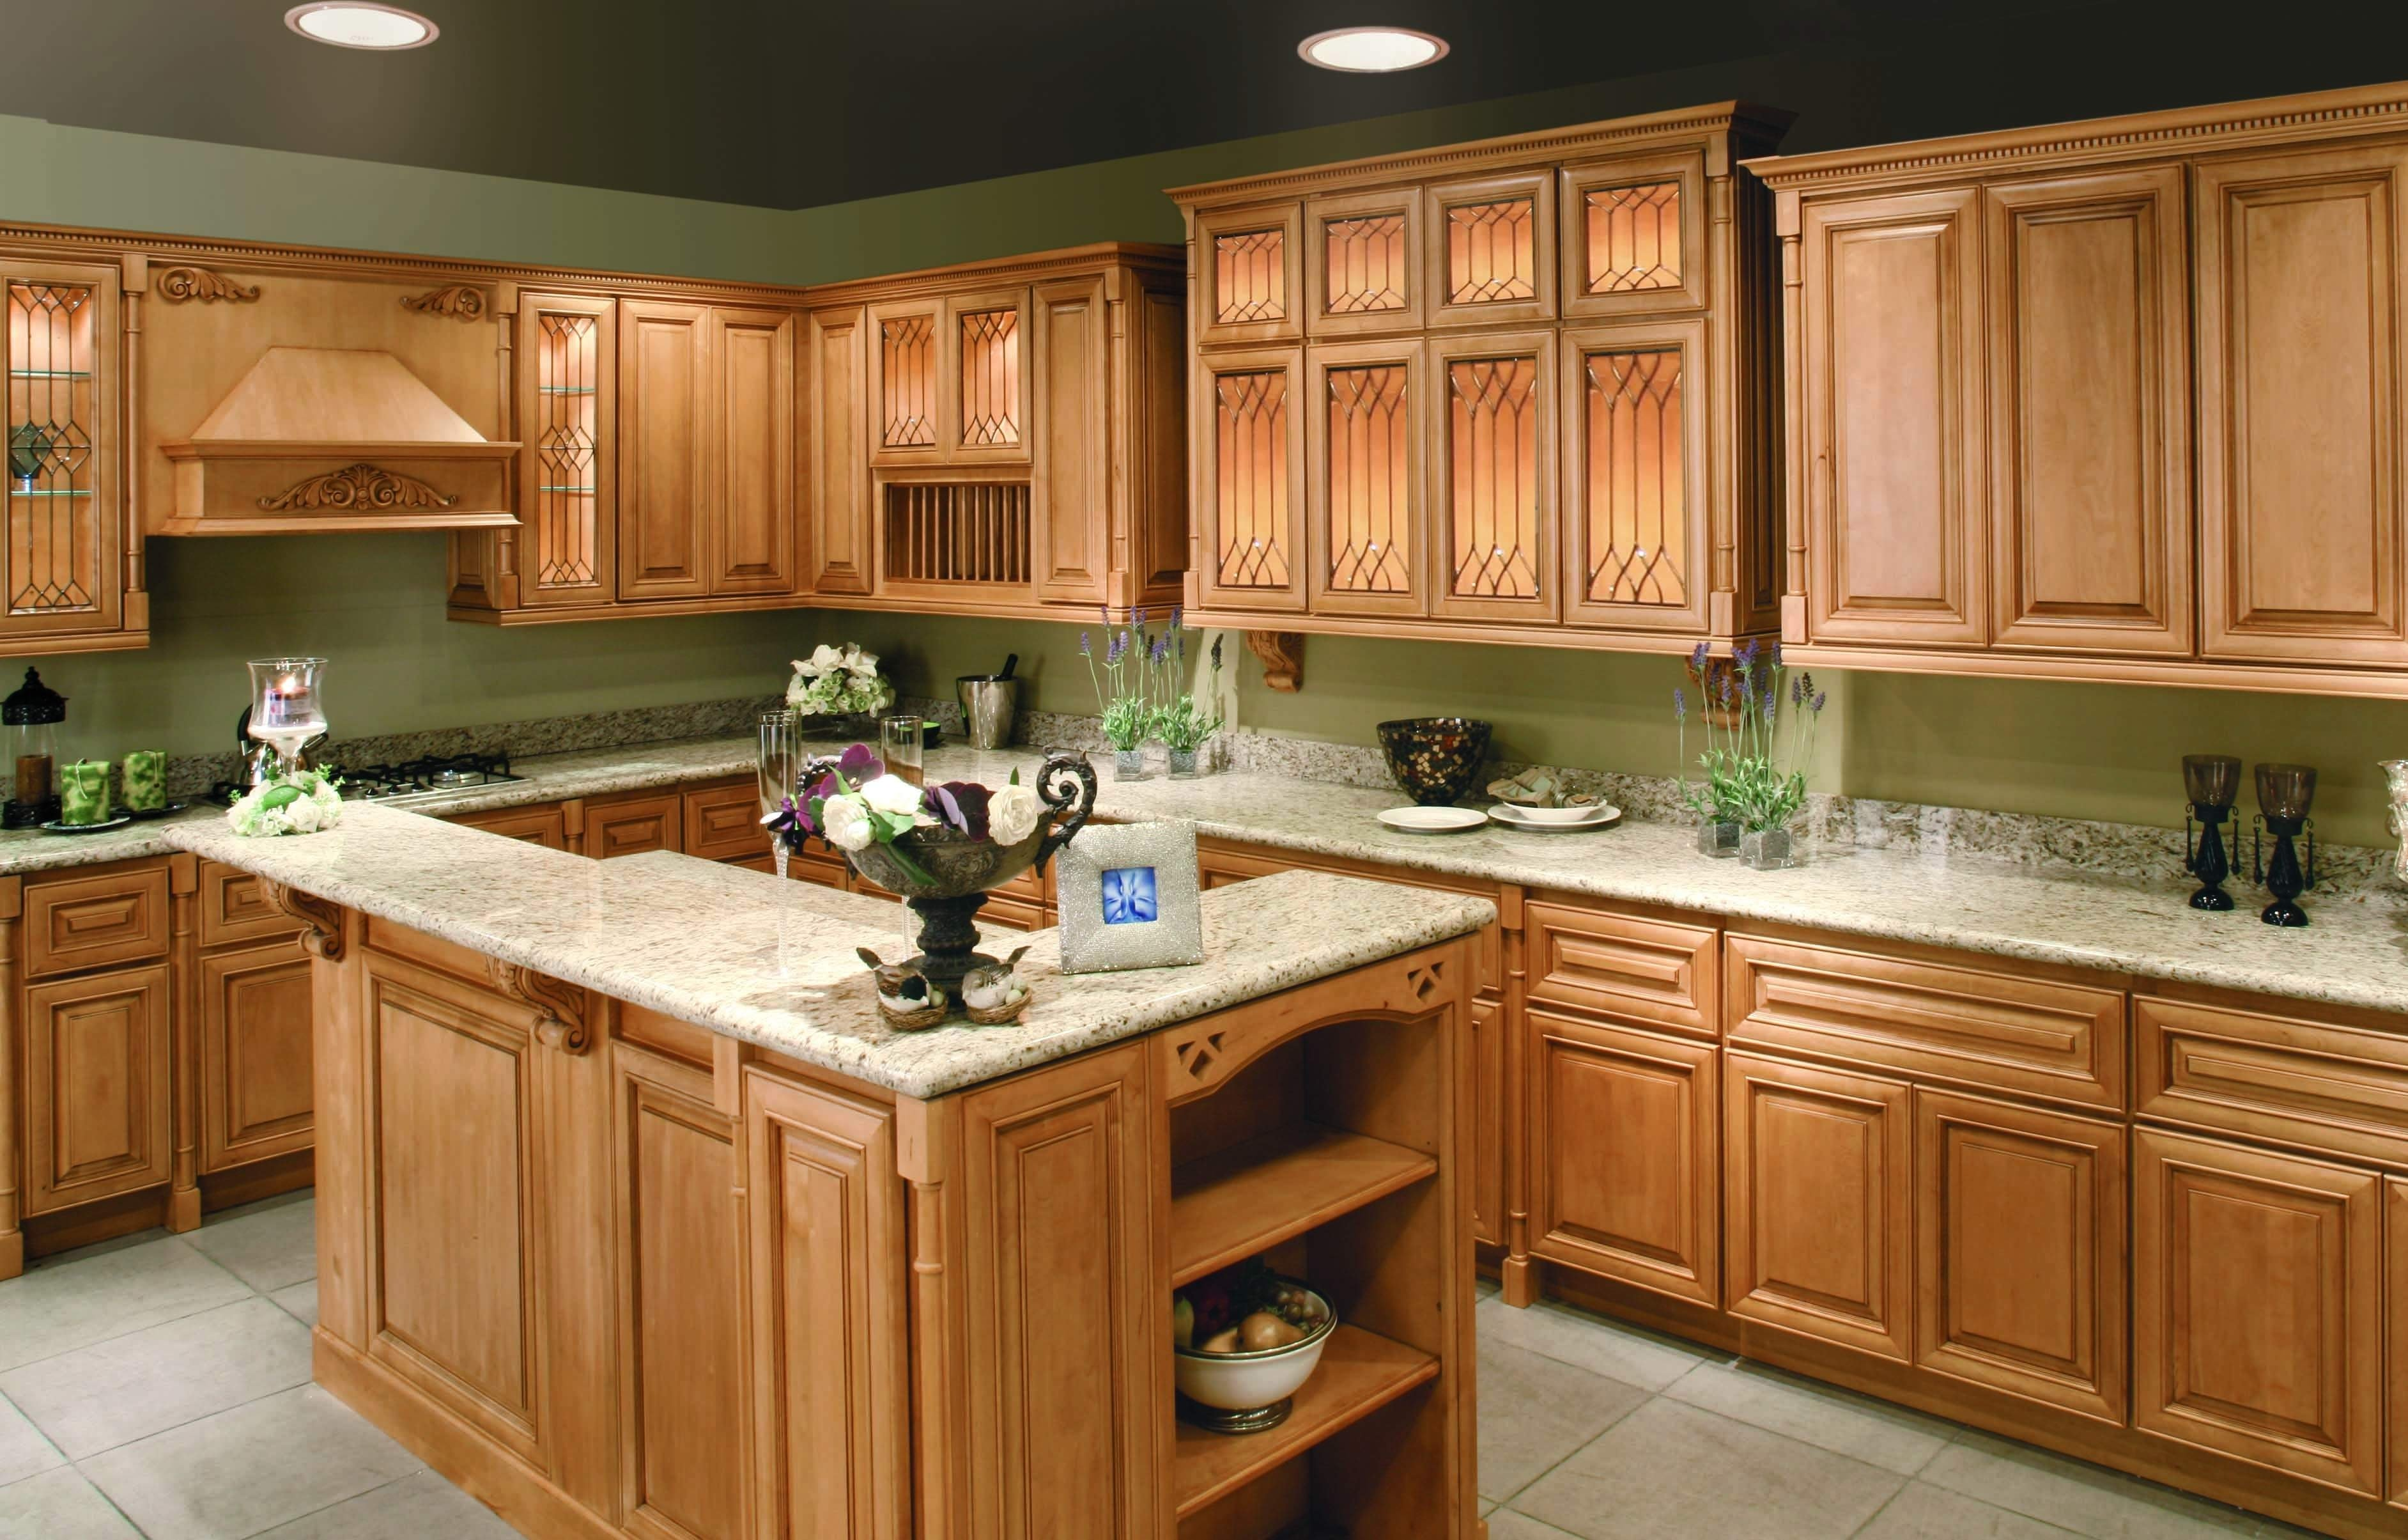 10 Lovable Kitchen Color Ideas With Maple Cabinets decorating your design a house with creative simple kitchen paint 2020